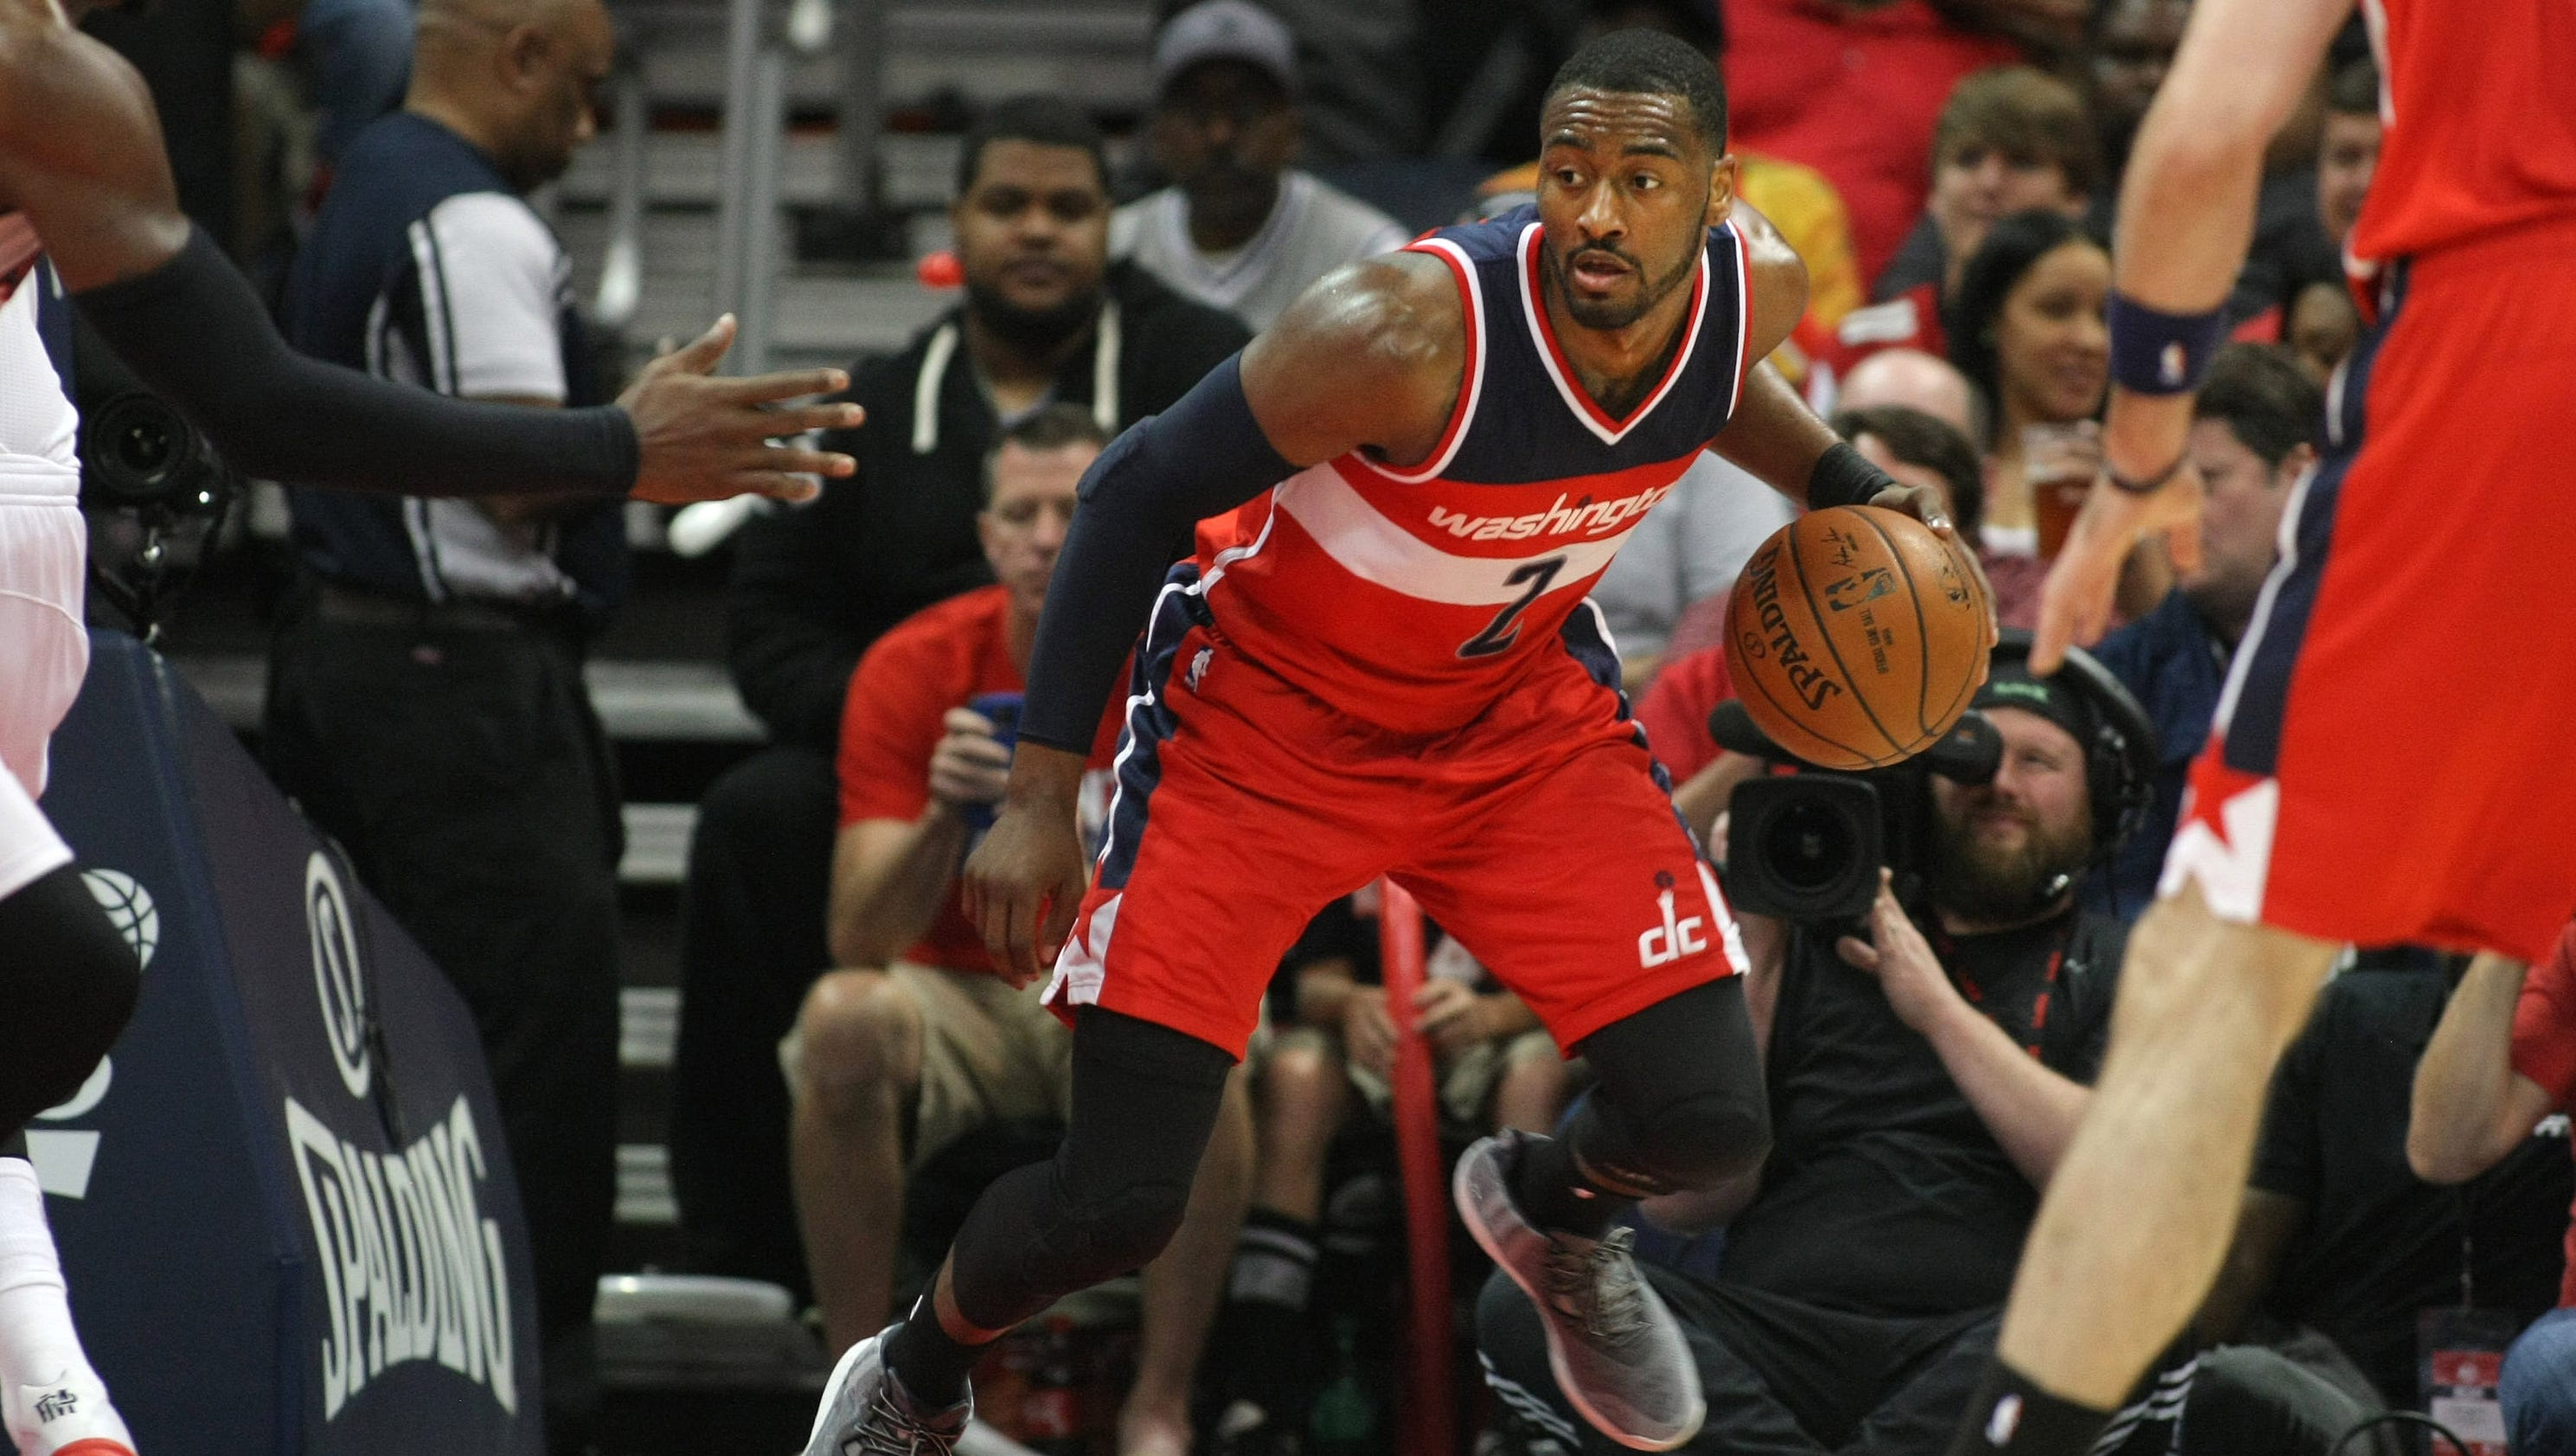 Beal leads well-rested Wizards past Hawks 104-98 in Game 1